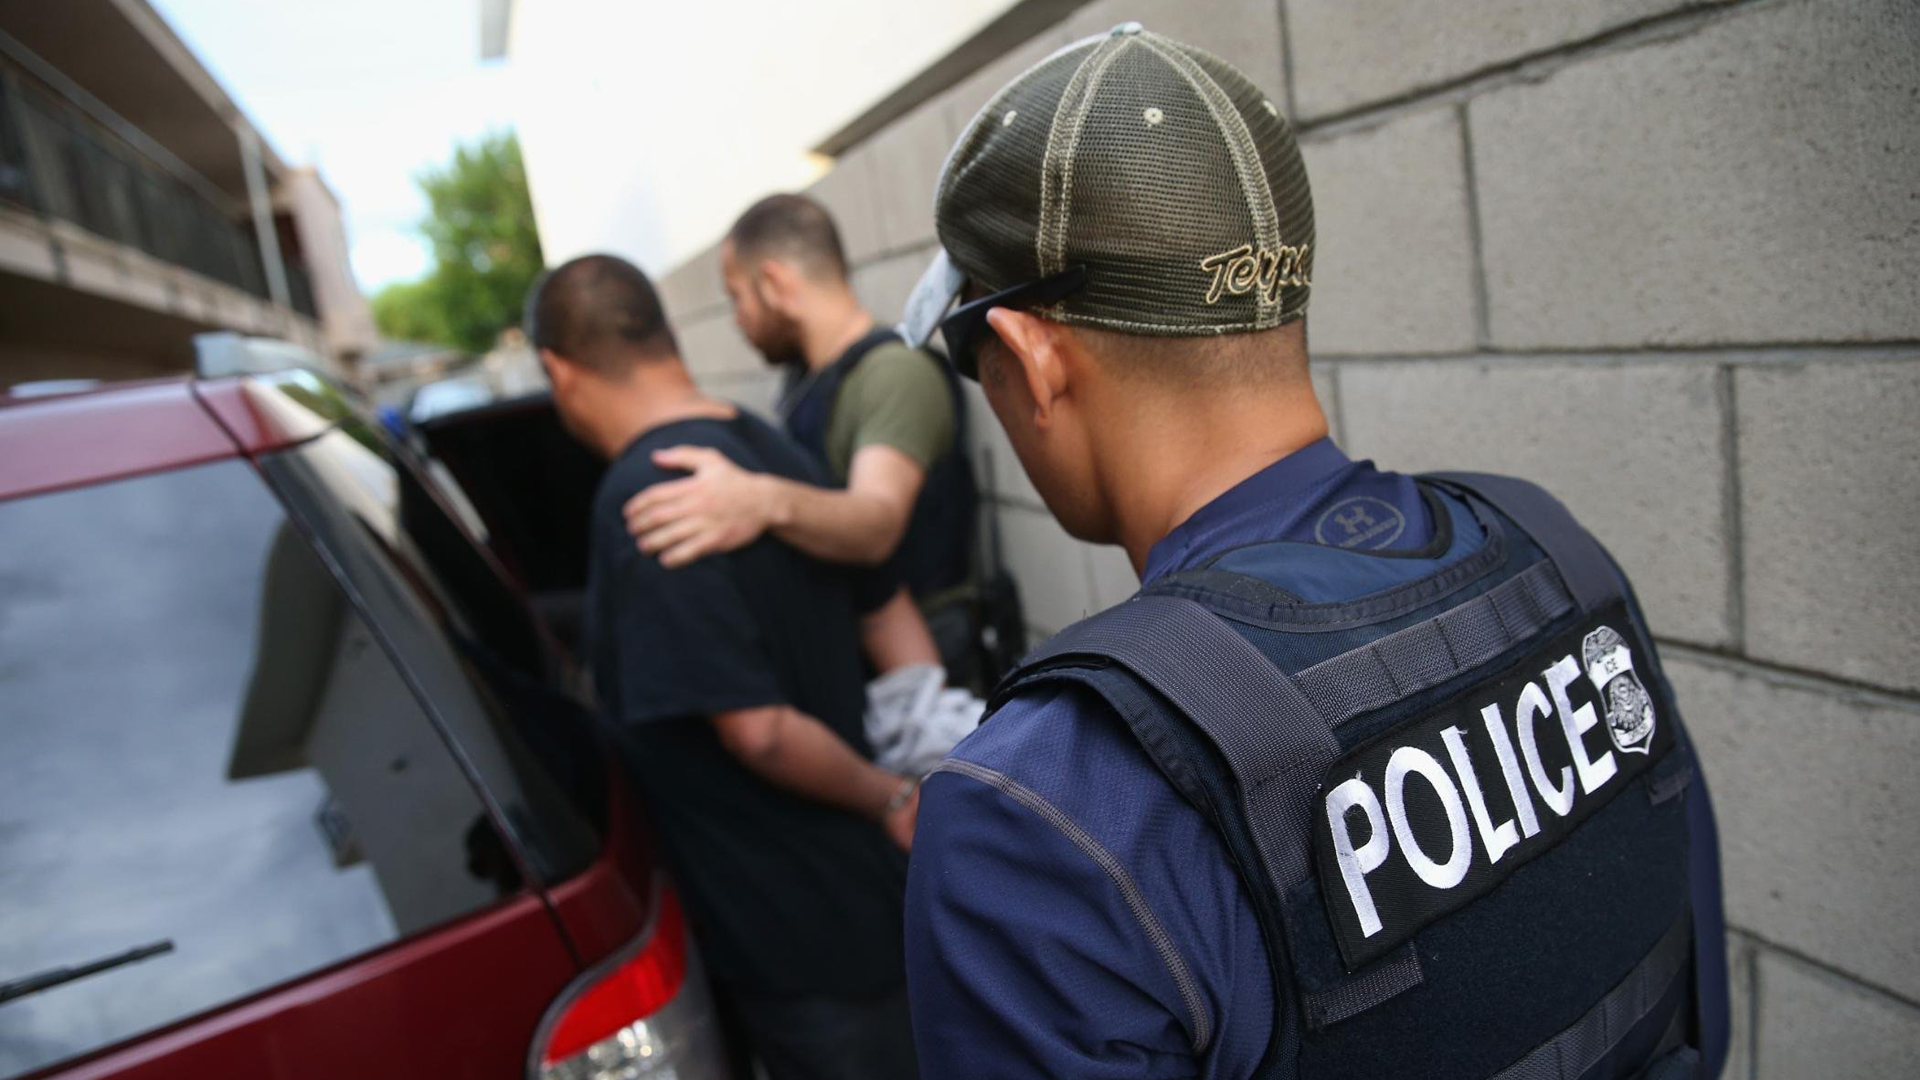 The 9th US Circuit Court of Appeals on Friday ruled in favor of the Trump administration, saying the Department of Justice could give preference in awarding grants to cities that would use the money to focus on illegal immigration, as the federal government prepares to seek out undocumented immigrants in raids this weekend. (Credit: John Moore/Getty Images via CNN)